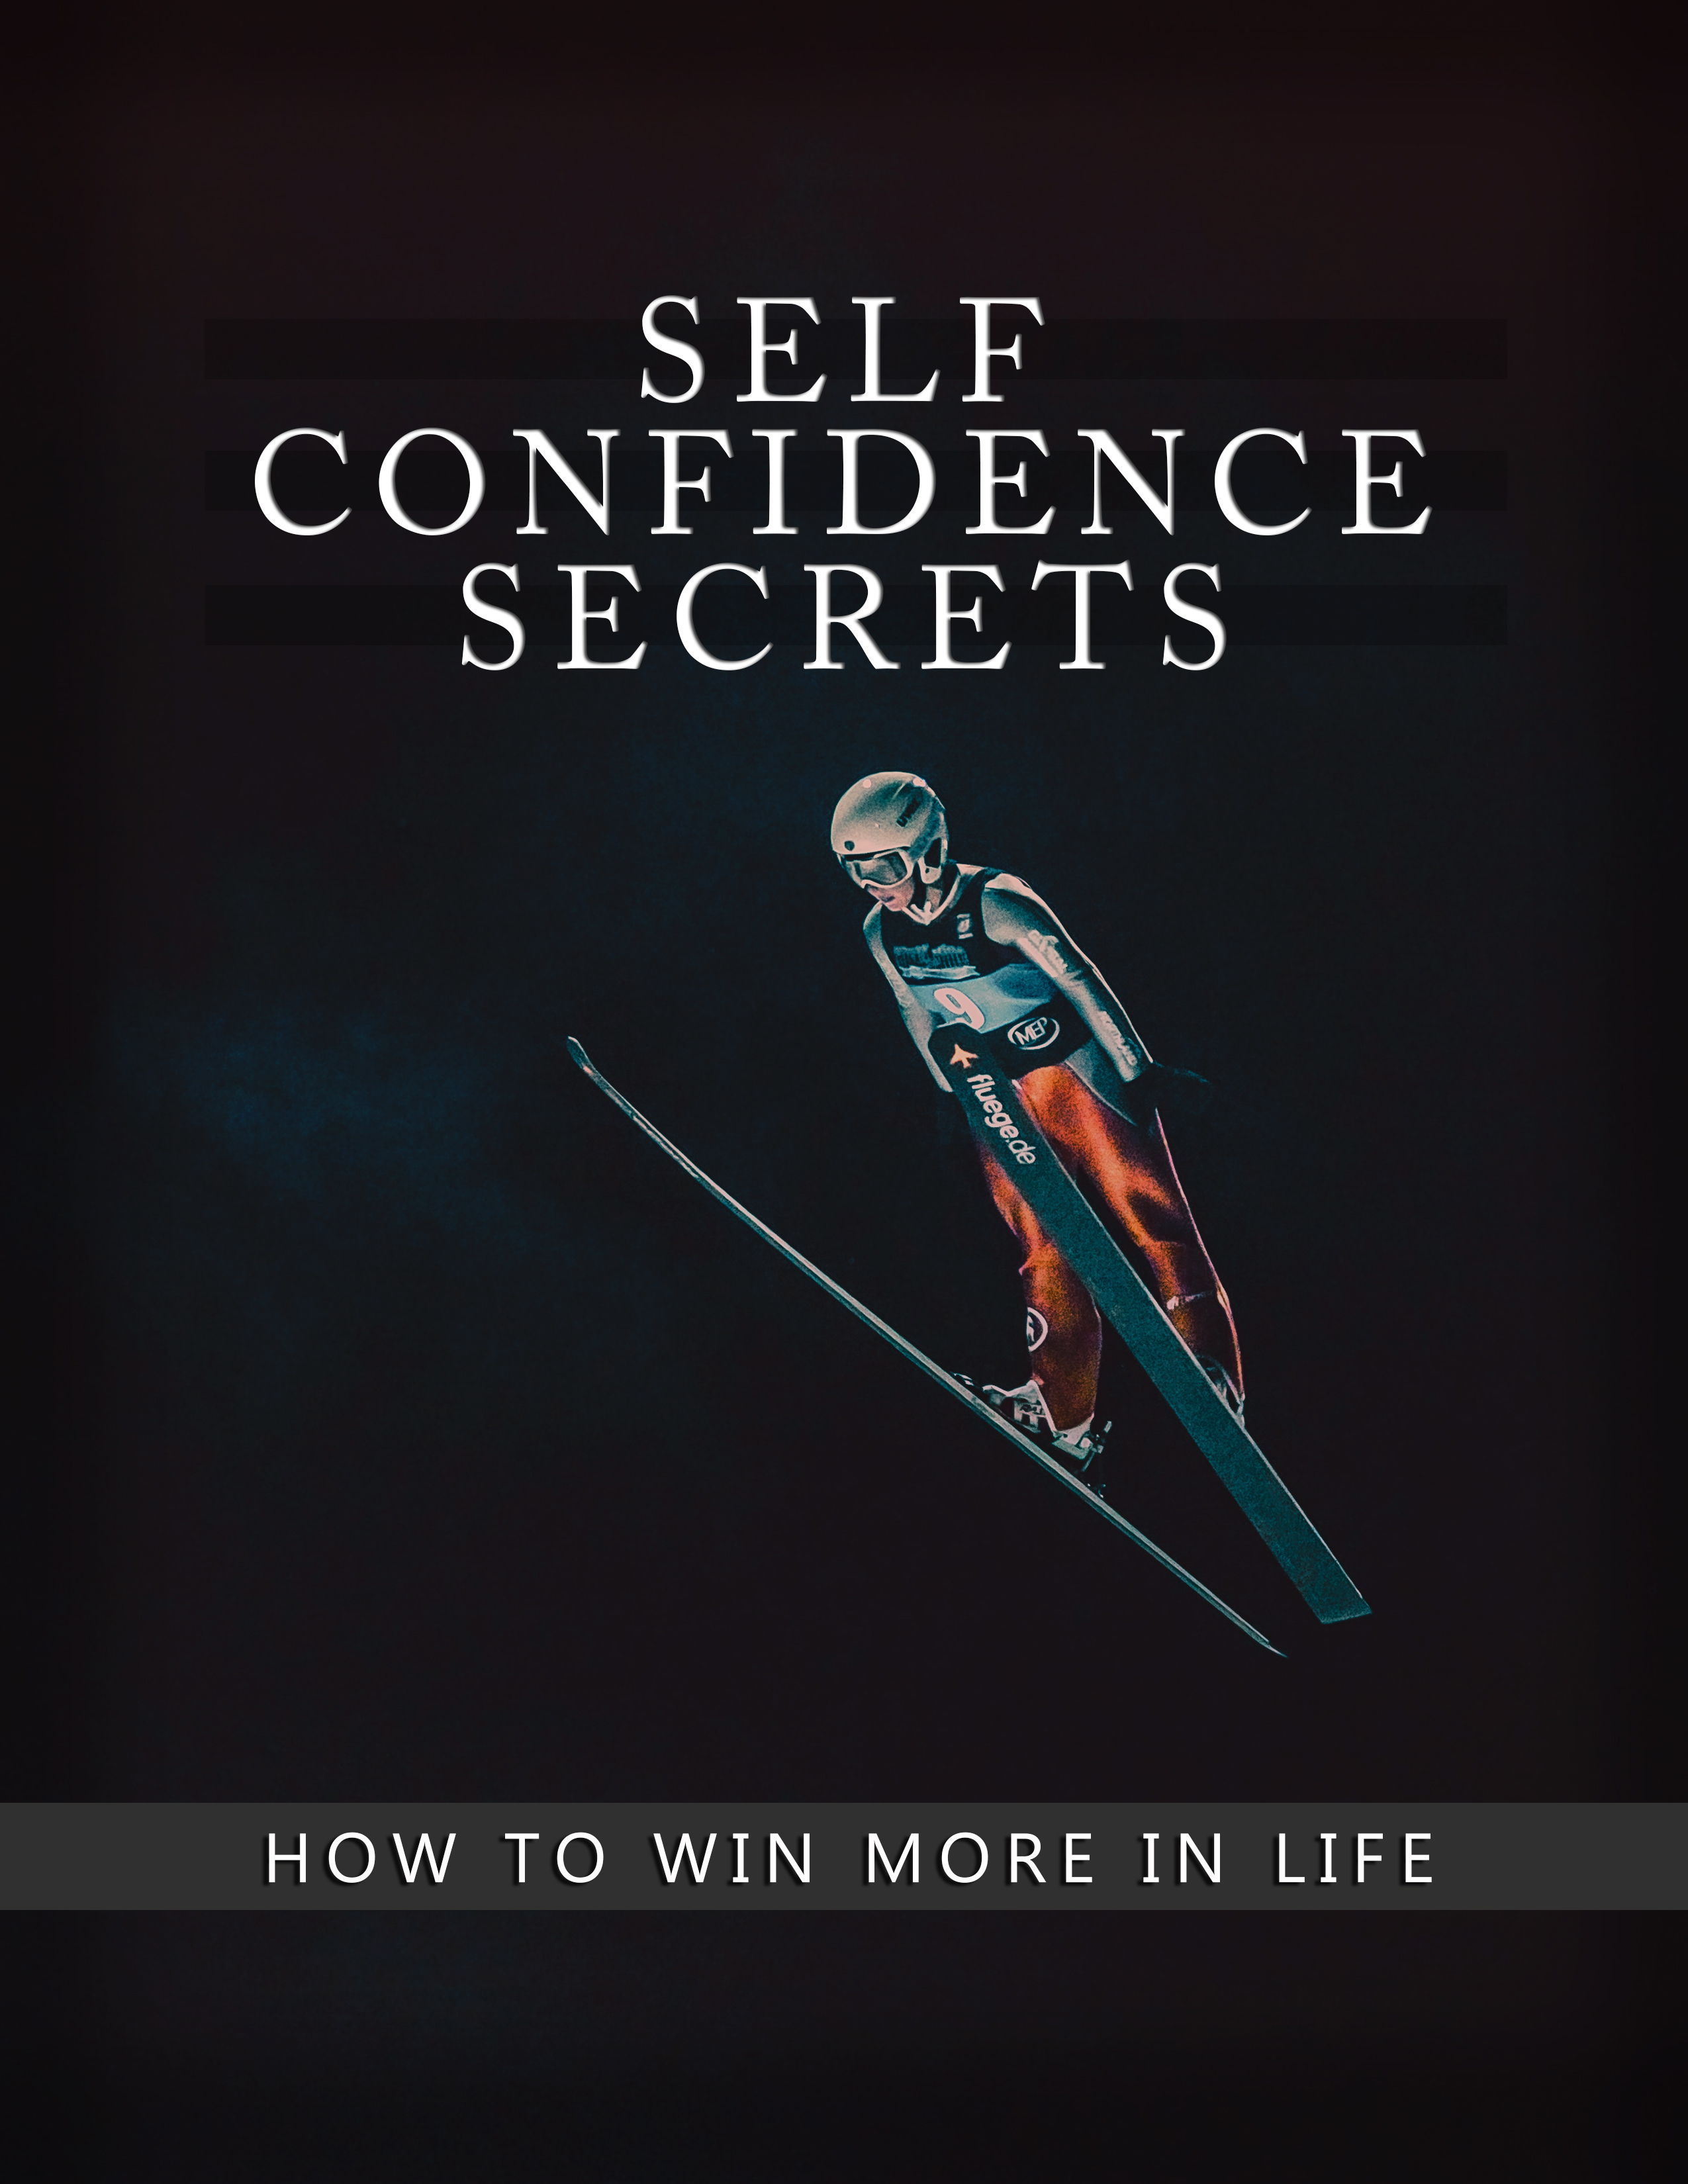 Self-Confidence Secrets (How To Win More In Life) Ebook's Ebook Image